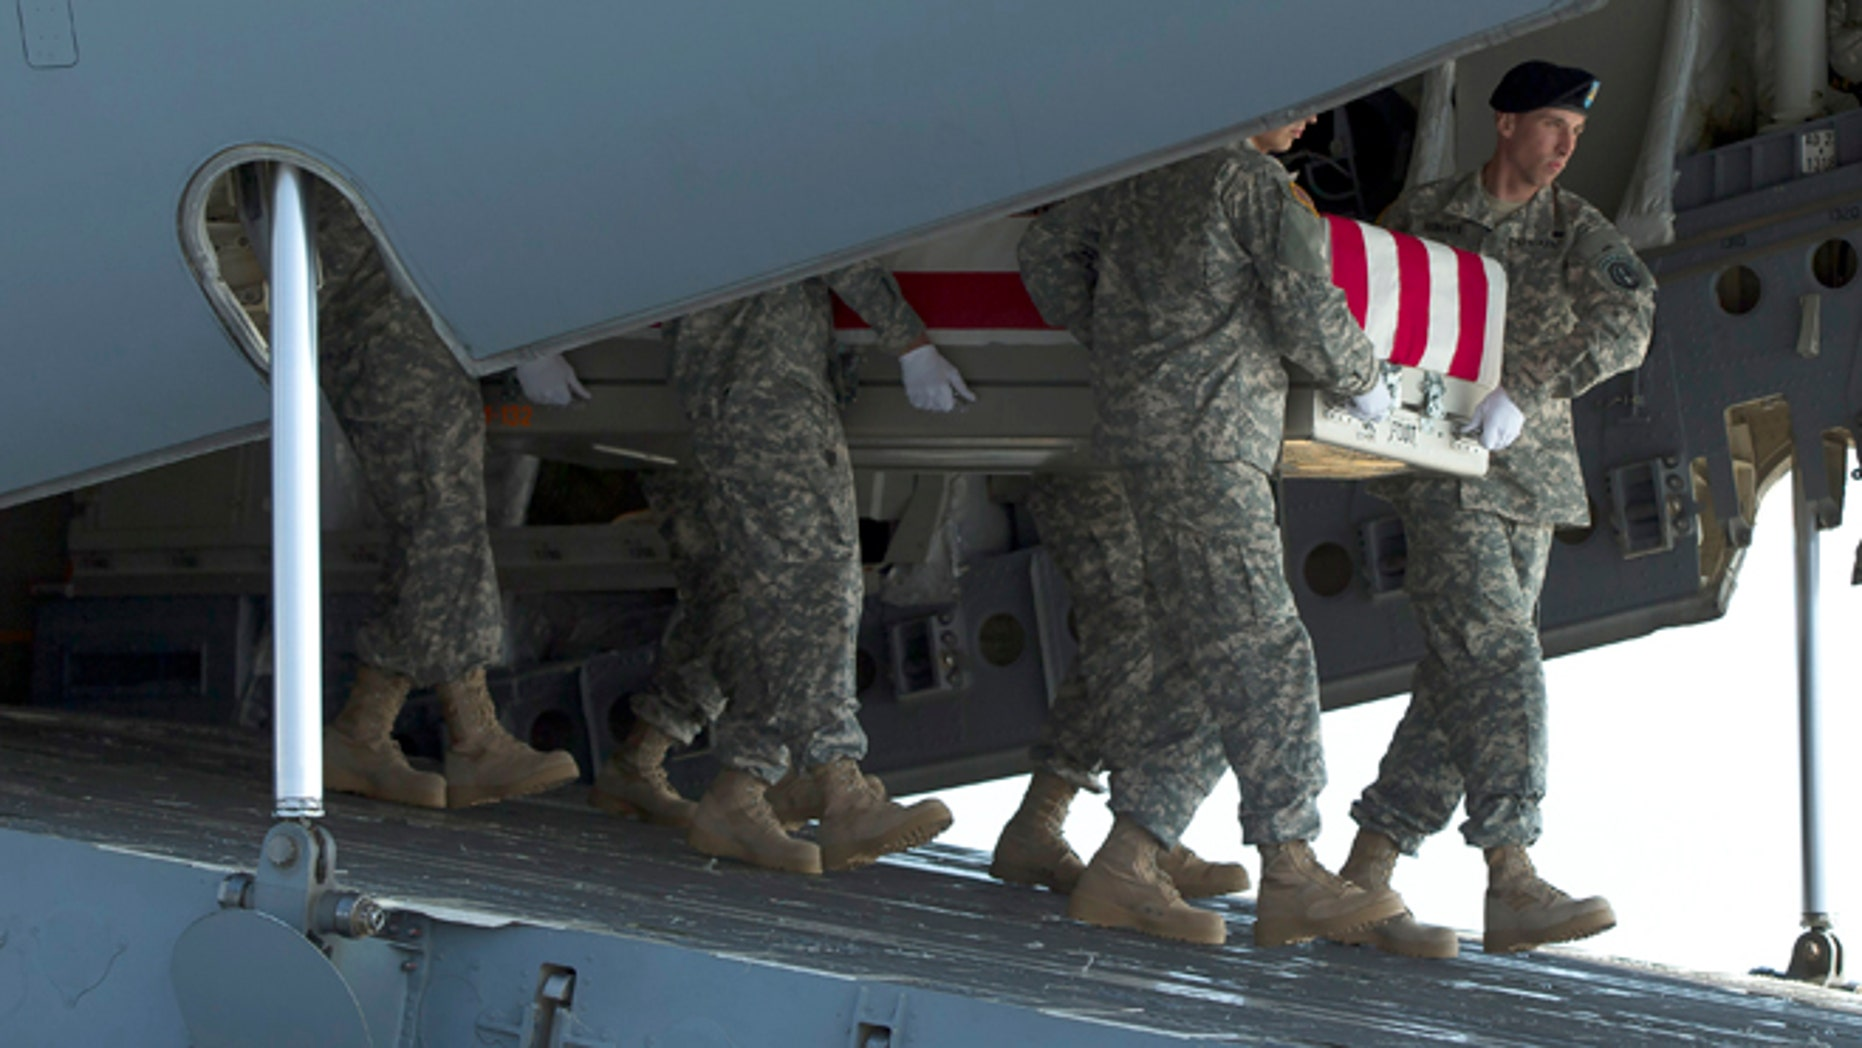 An Army carry team transfers the remains of Army Maj. Gen. Harold Greene, Thursday, Aug. 7, 2014, at Dover Air Force Base, Del.The C-17 cargo plane carrying the body of Harold Greene landed Thursday morning at Dover, home to the nation's largest military mortuary. Greene is the highest-ranked U.S. officer to be killed in combat since 1970 during the Vietnam War. Greene, a 34-year U.S. Army veteran, also is the highest-ranked American officer killed in combat in the wars in Afghanistan and Iraq.  (AP Photo/Evan Vucci)